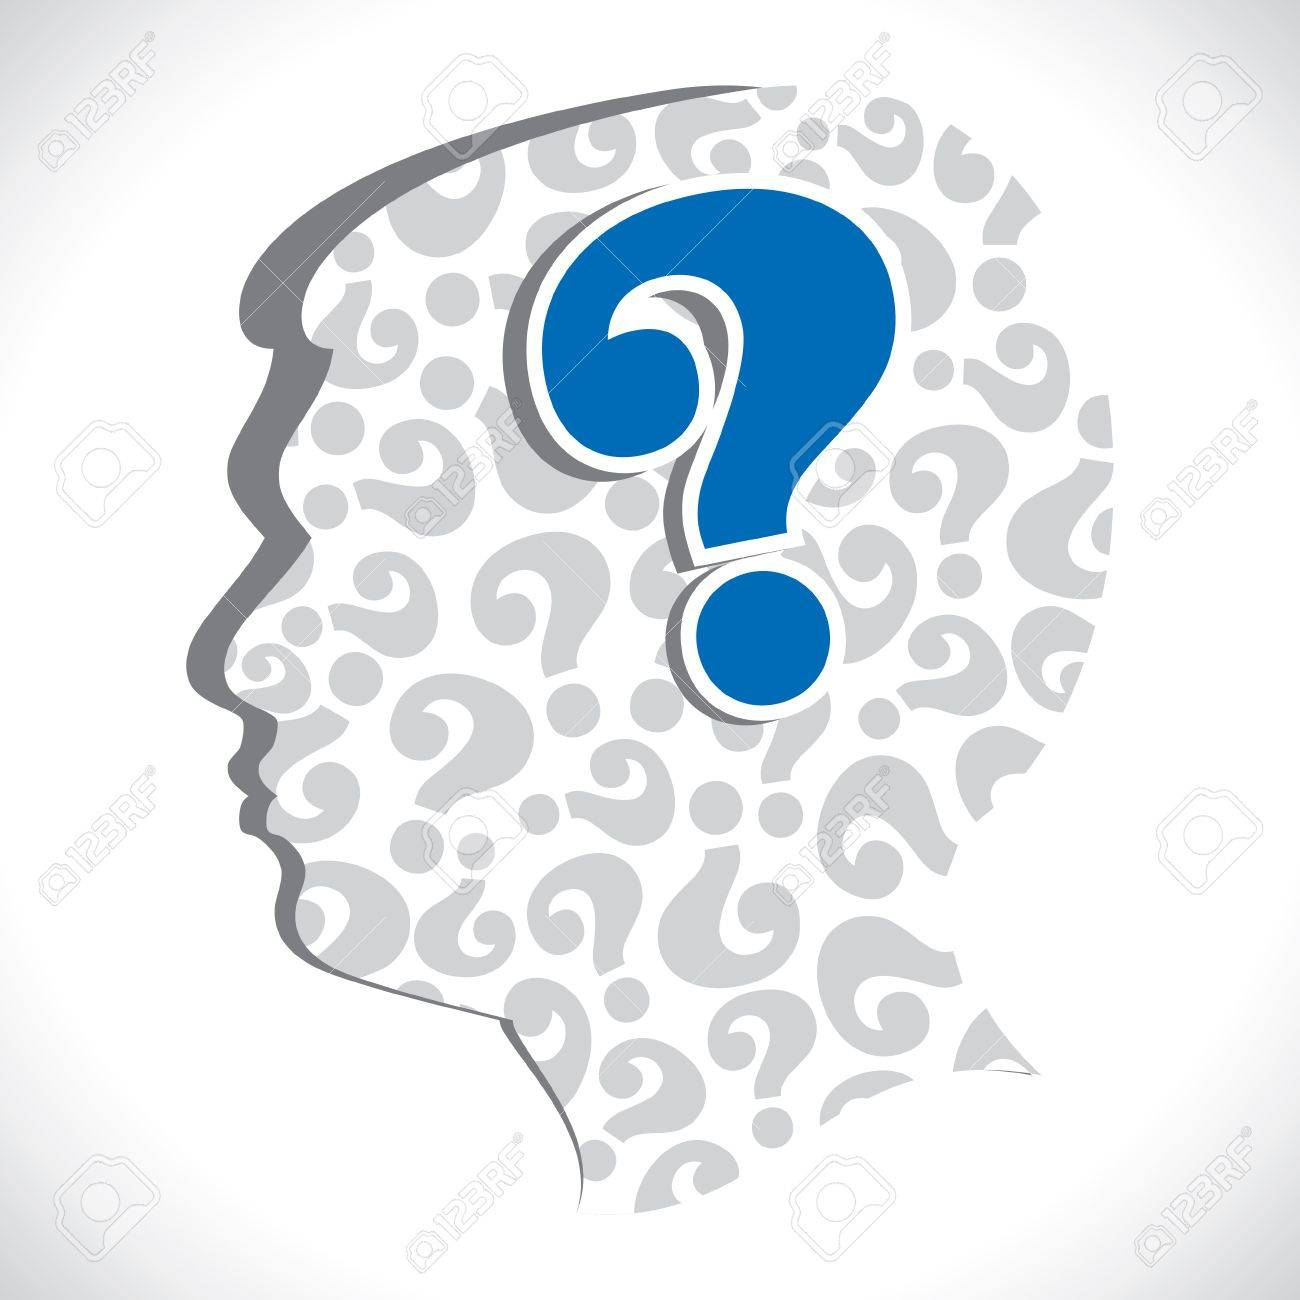 big question mark in head stock vector Stock Vector - 17763363